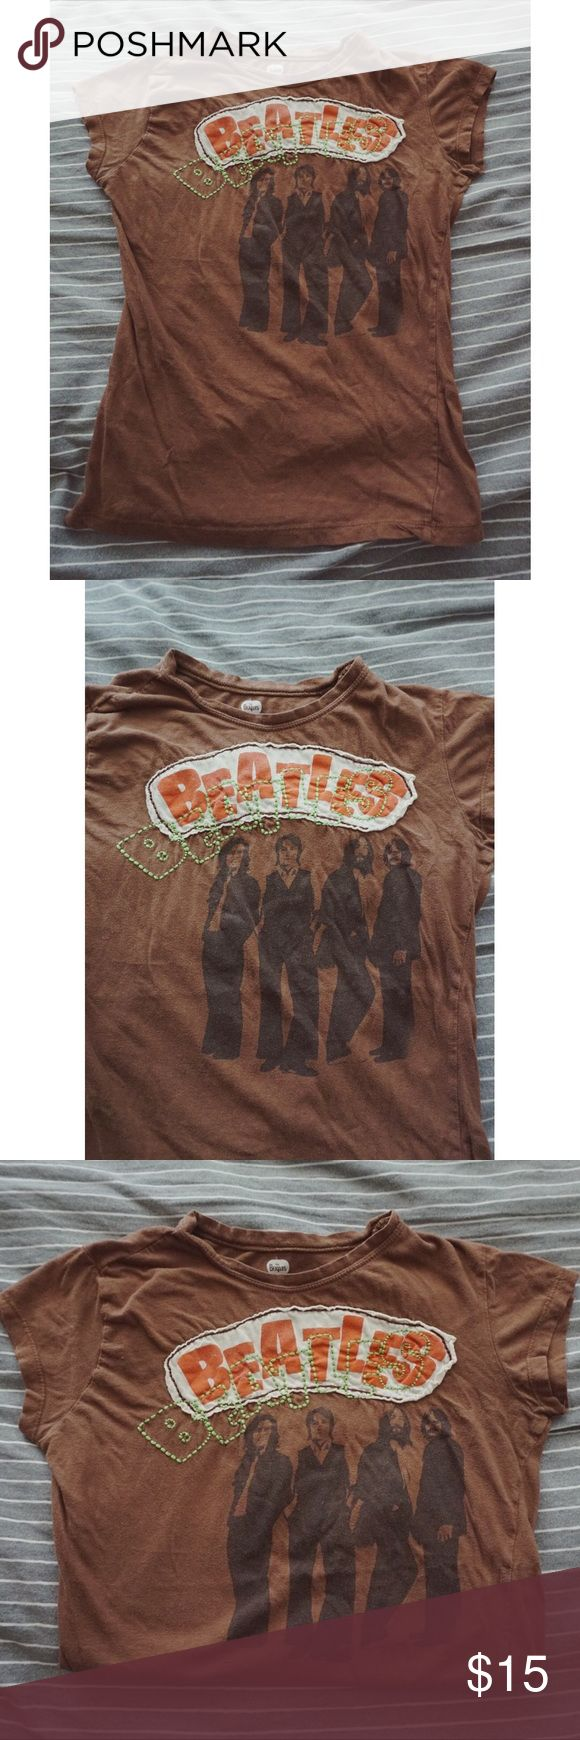 Brown Beatles Tee Rad Beatles tee featuring unique embroidery detail. Originally purchased at the Cirque du Soleil show LOVE in Las Vegas many years ago. This tee has gotten a lot of use and has fading and pilling throughout. I personally think it gives this piece a neat vintage look. Soft material. Size large but runs a bit small (fits more like a small/medium). Feel free to ask any further questions or make an offer via the offer button👇 Apple Corps Tops Tees - Long Sleeve